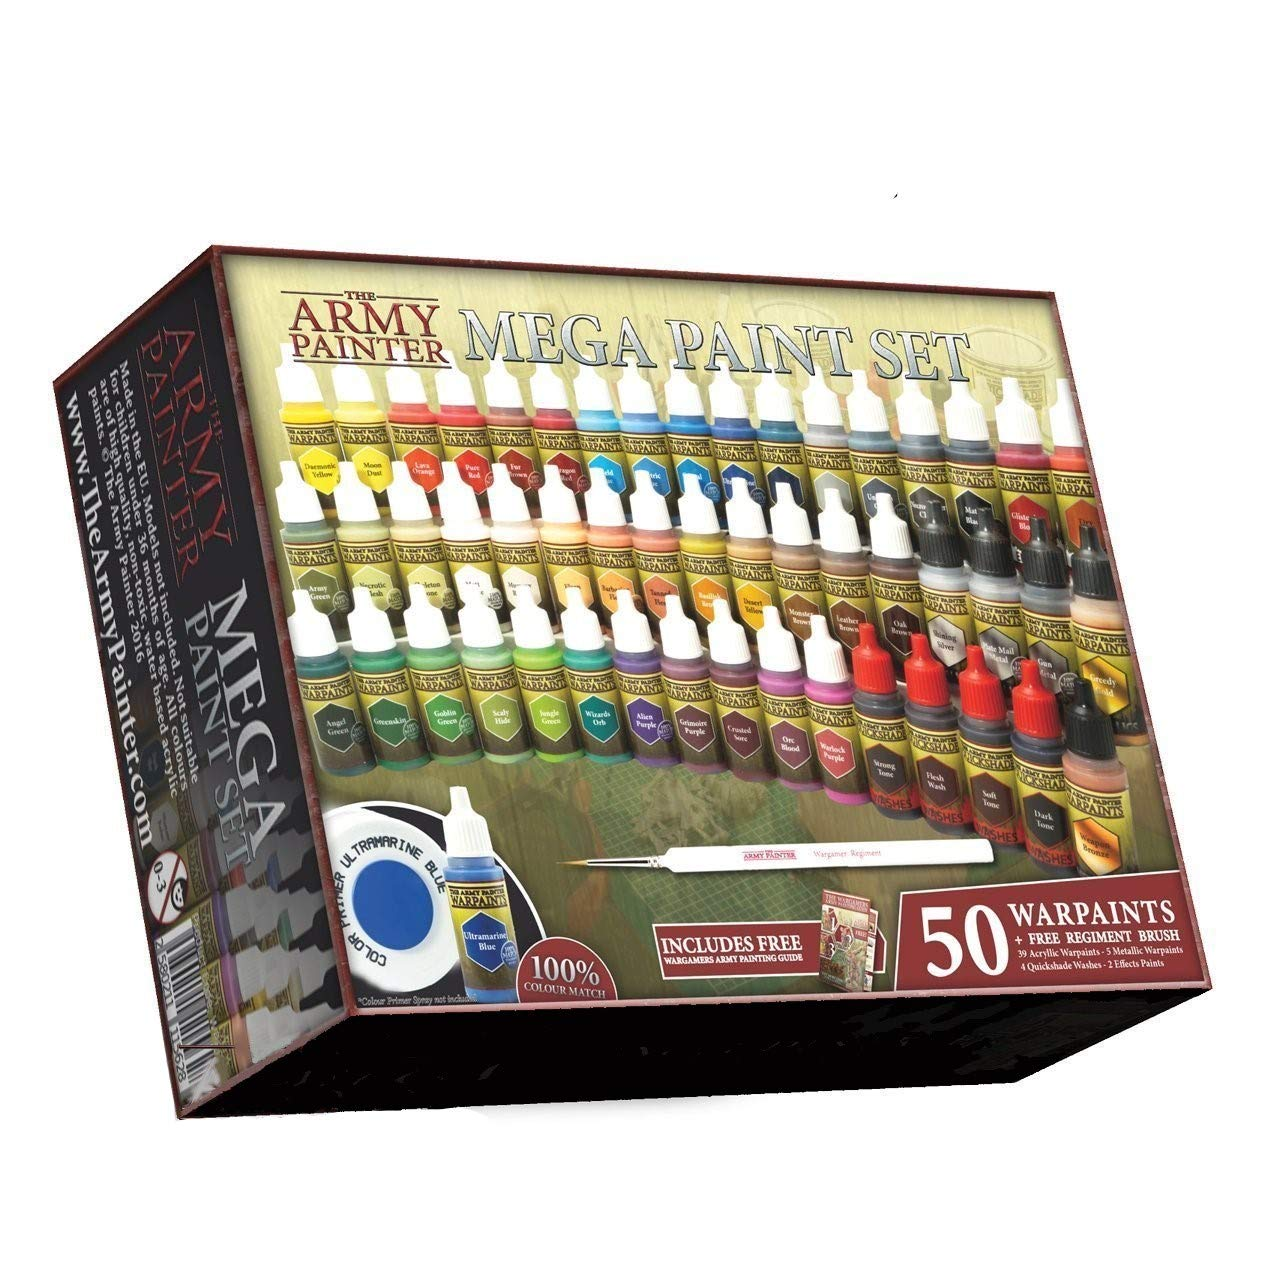 The Army Painter Miniature Painting Kit with Bonus Wargamer Regiment Miniature Paint Brush - Acrylic Model Paint Set with 50 Bottles of Non Toxic Model Paints - Mega Paint Set 3 by The Army Painter